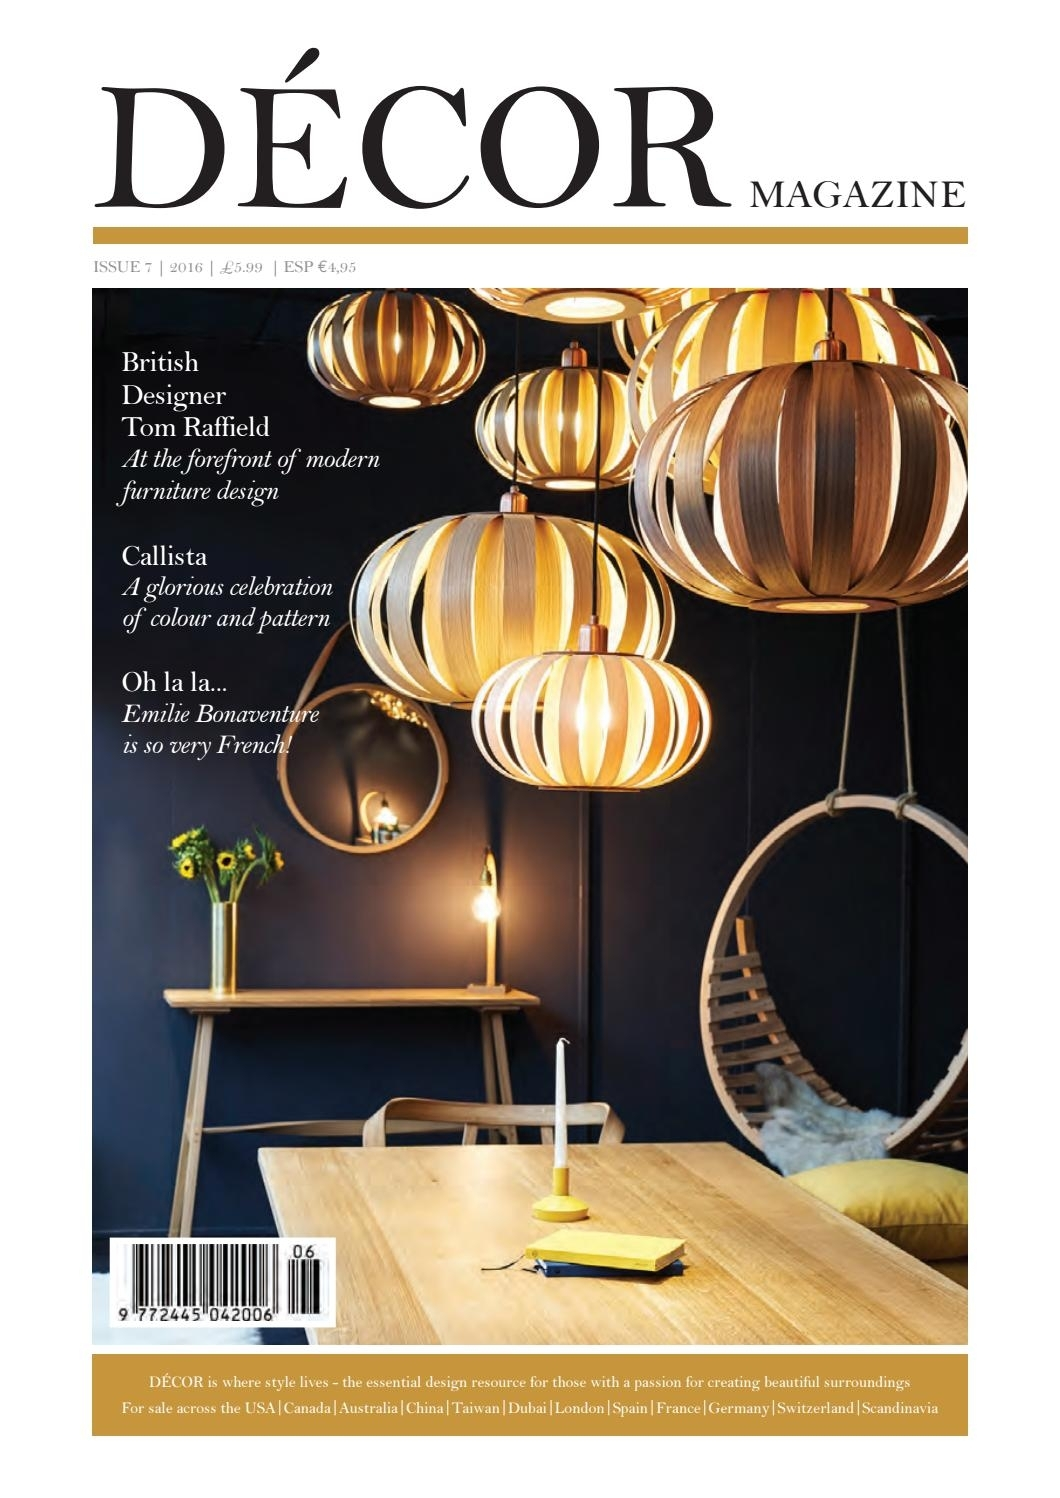 Decor Magazineclearvision Marketing – Issuu With Regard To London Optical Reversible Sofa Chaise Sectionals (Image 9 of 25)